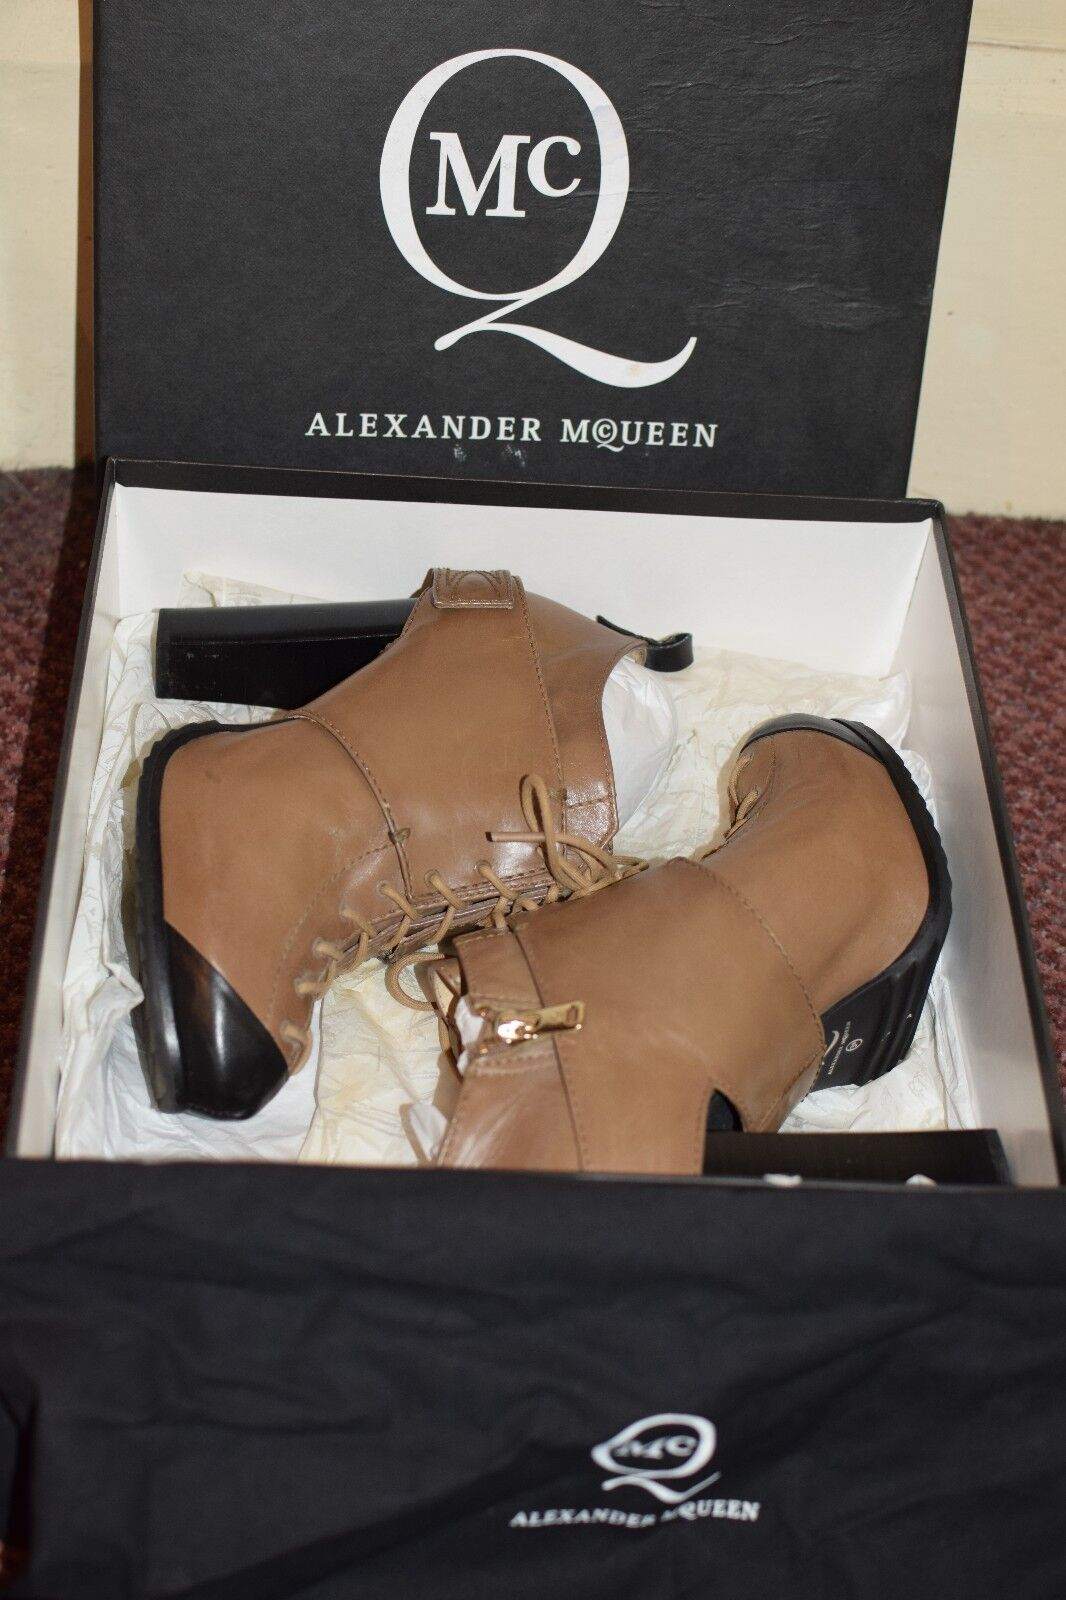 McQ McQ McQ Alexander McQueen lace up bootie ankle boot heels size 39 box + dustbag 24734c